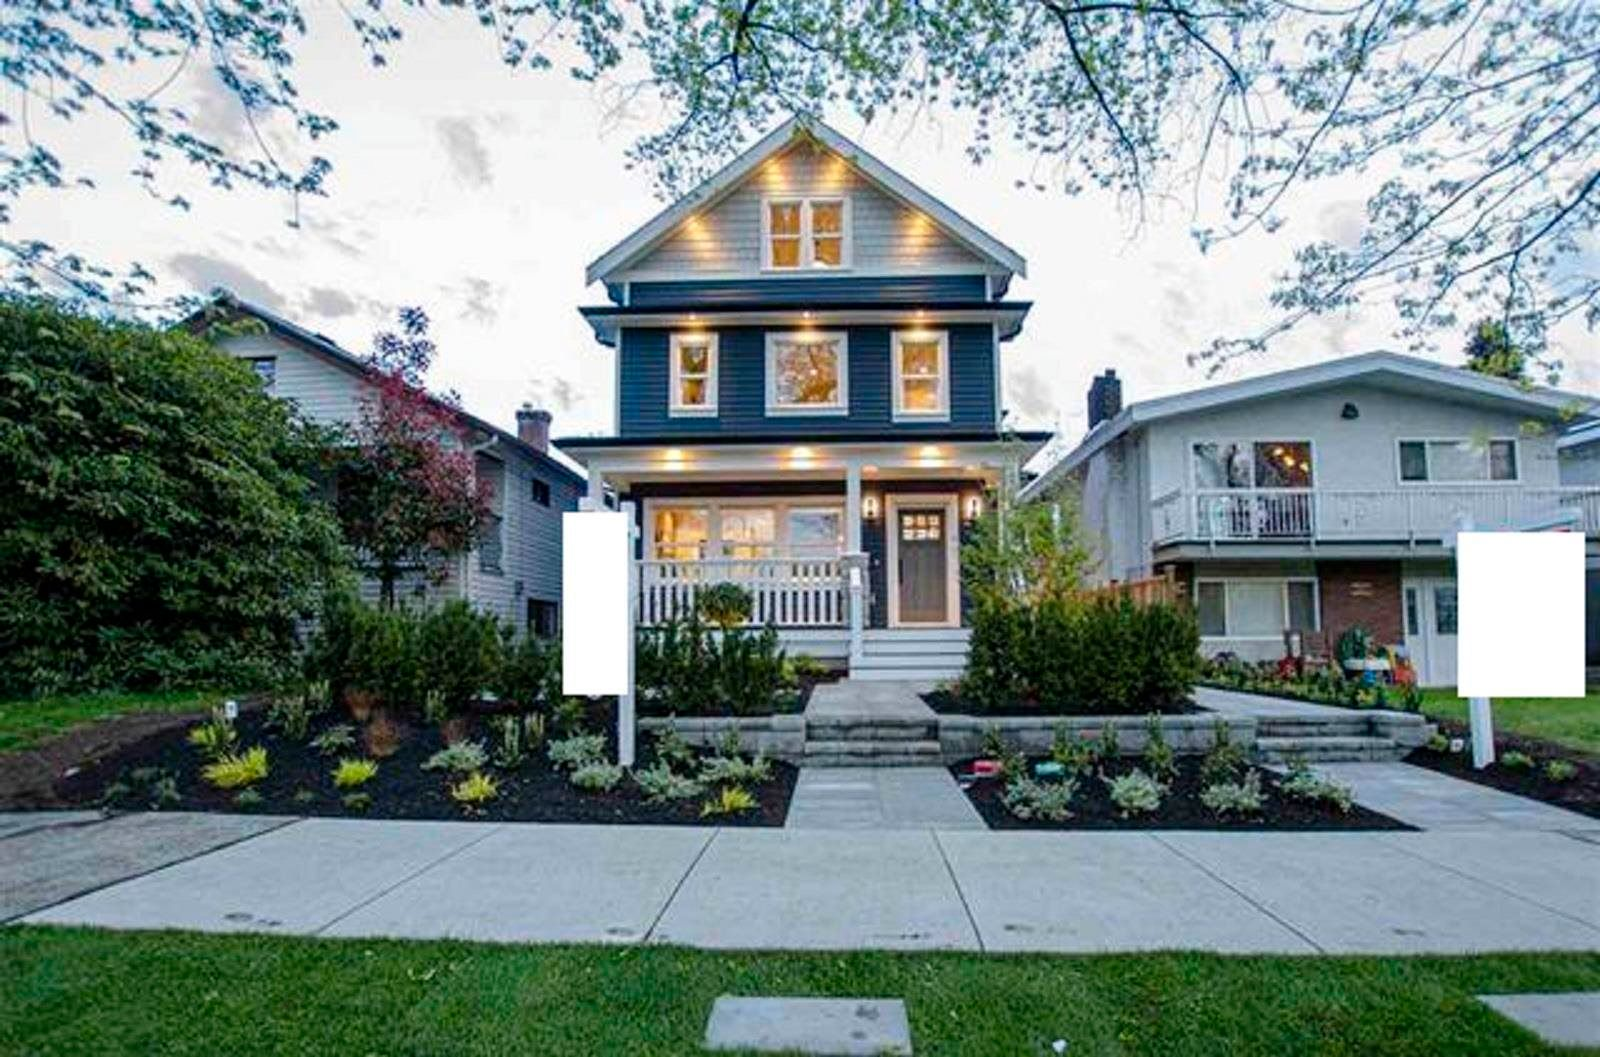 Main Photo: 2660 OXFORD Street in Vancouver: Hastings Sunrise 1/2 Duplex for sale (Vancouver East)  : MLS®# R2587175